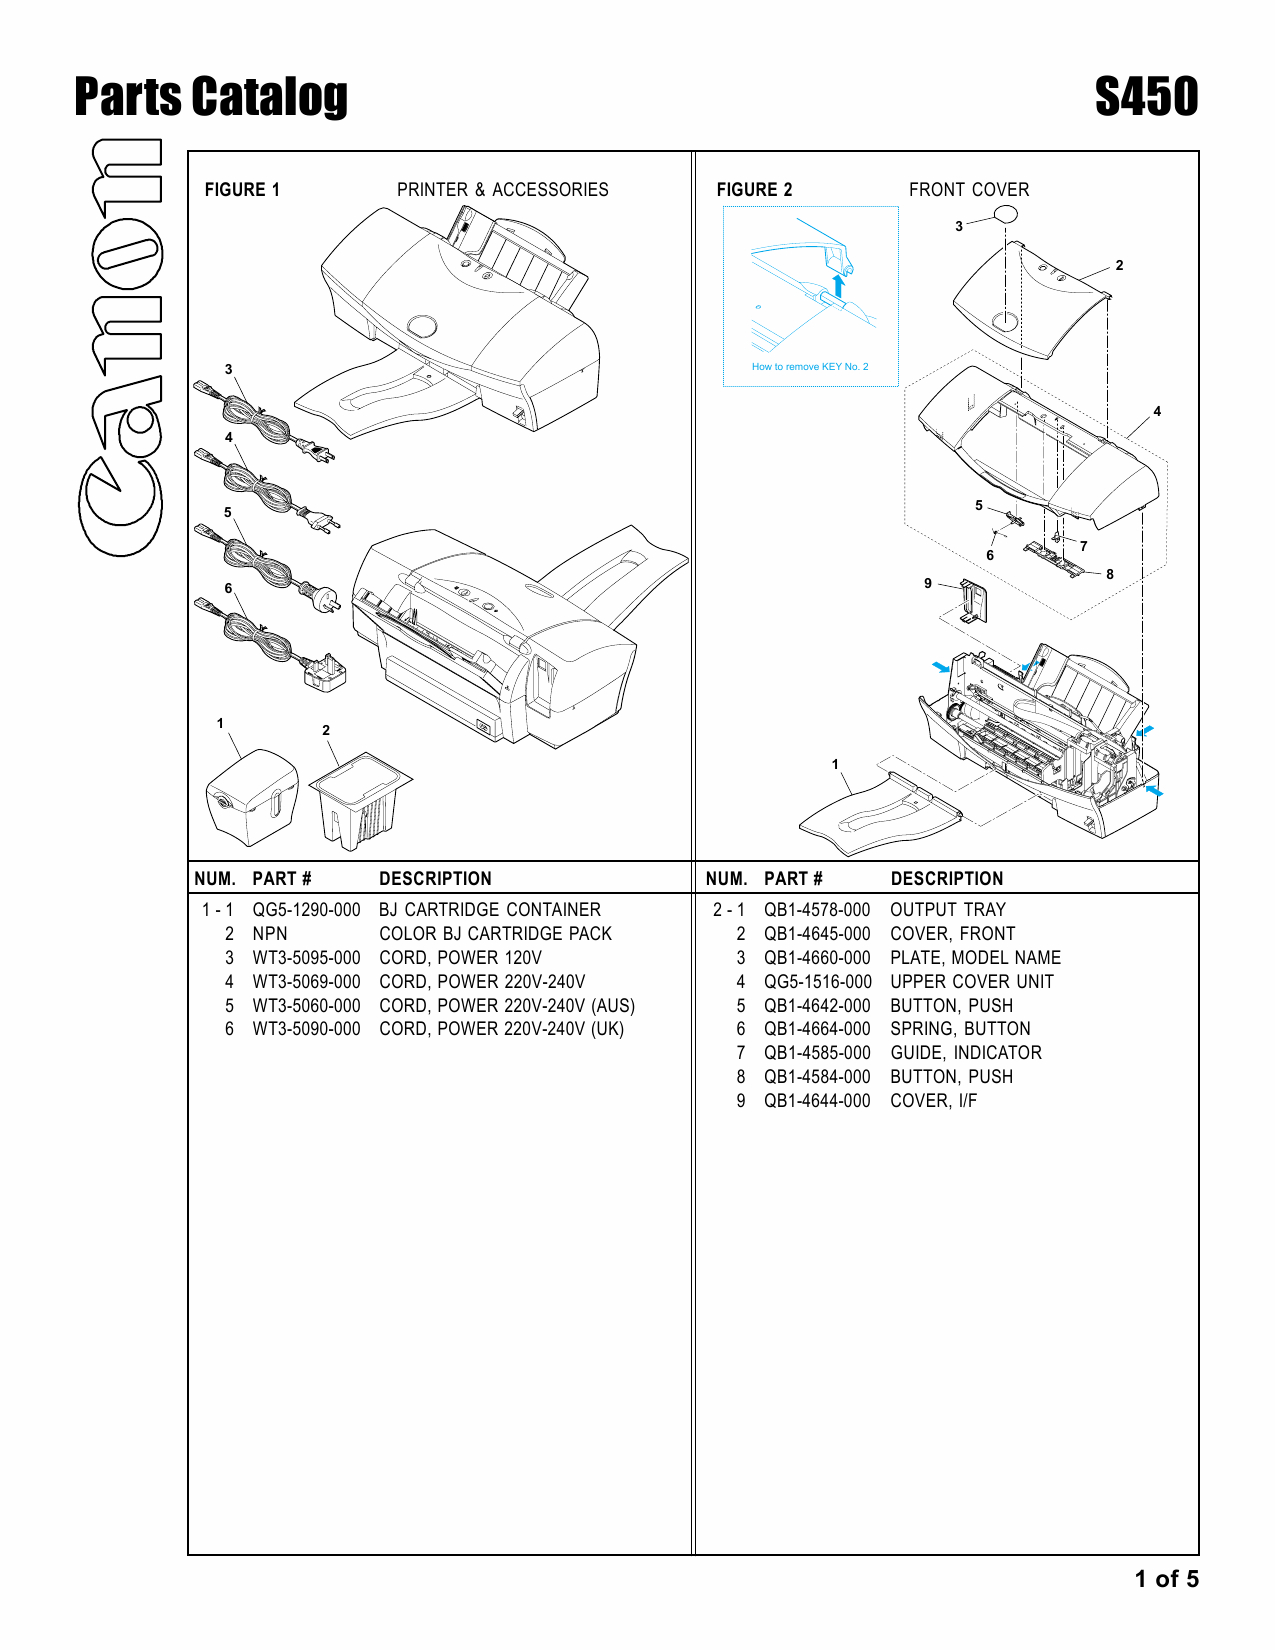 Canon PIXUS S450 Parts Catalog Manual-2